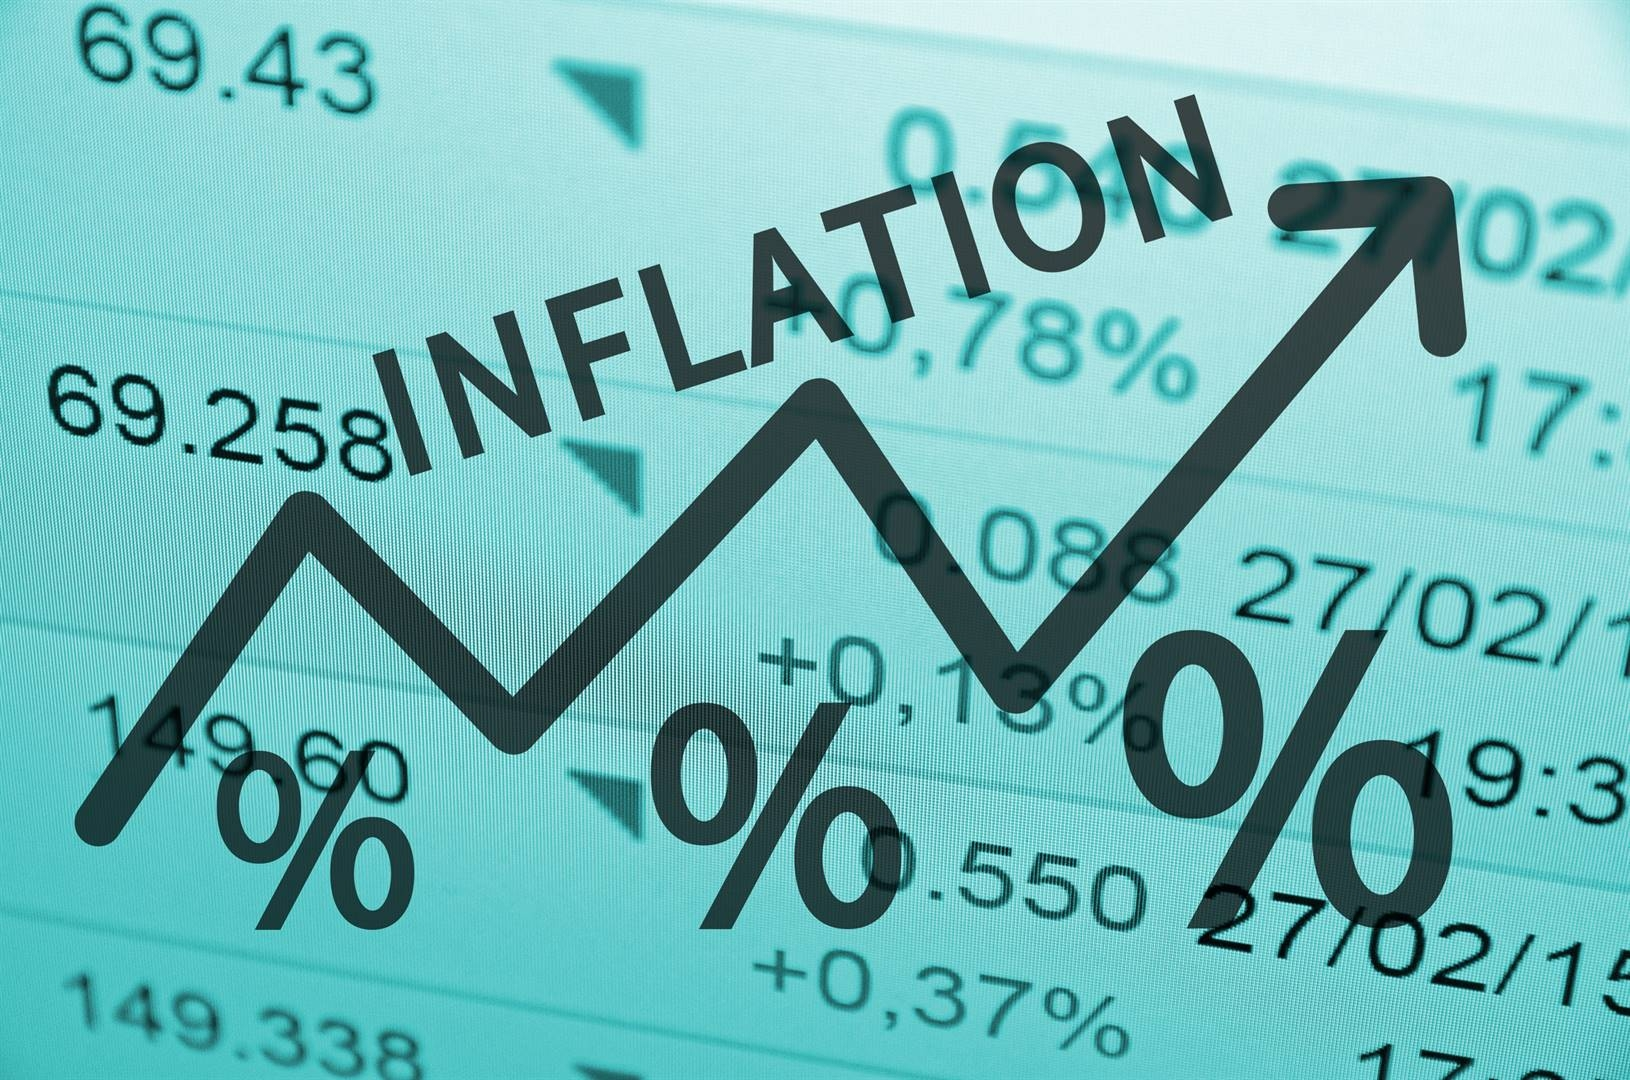 Inflation target set at 5.5%